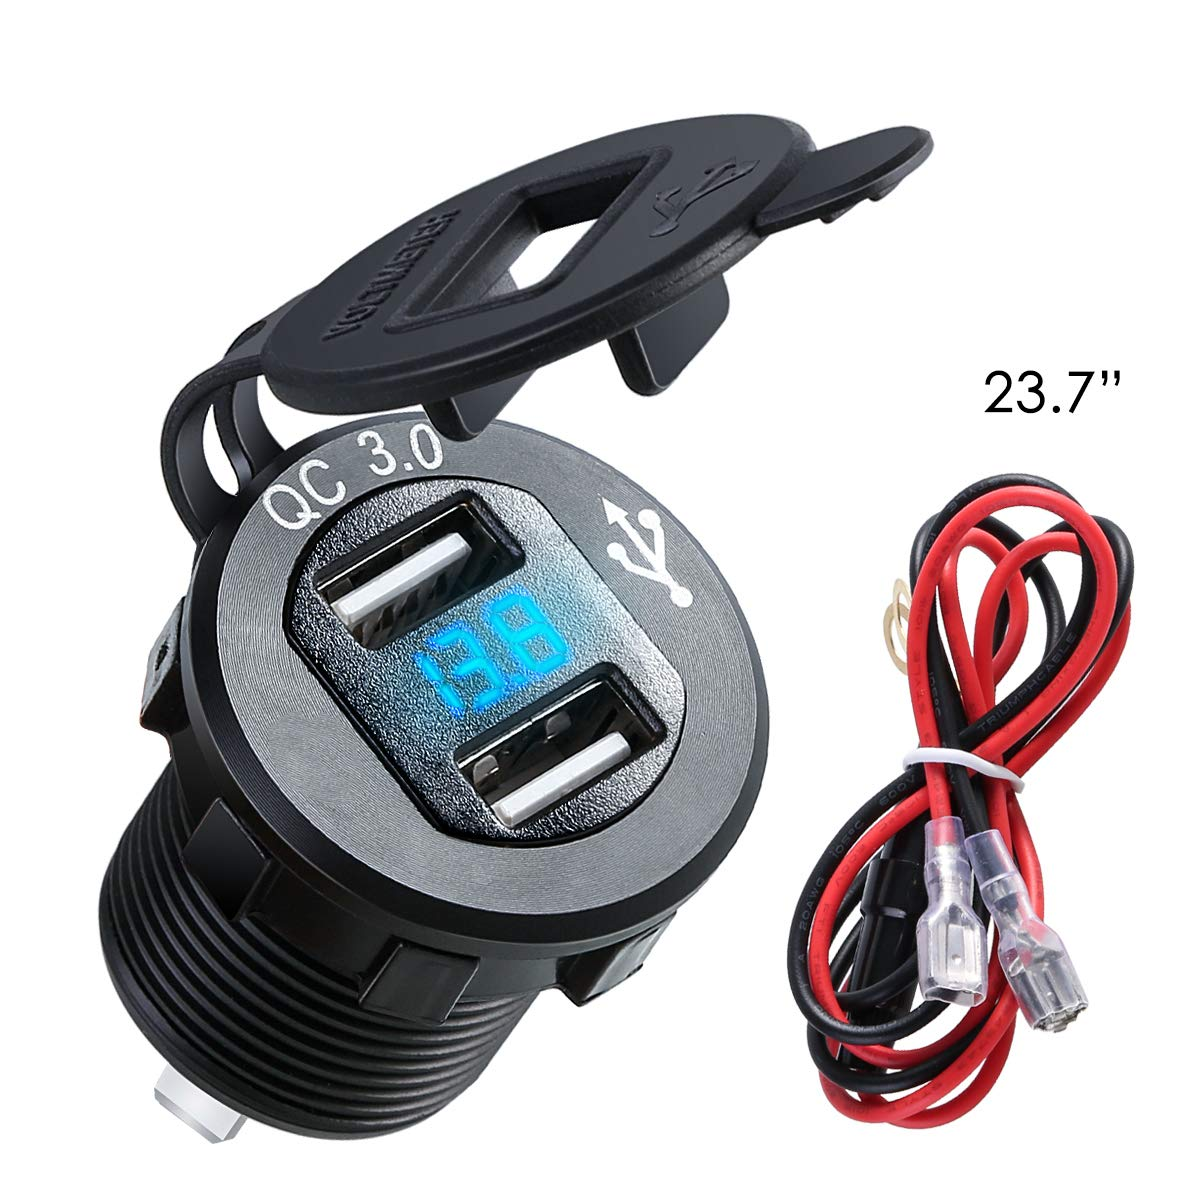 Dual USB Charger Socket Power Outlet with Digital Voltmeter QC 3.0 + 5v/1.5A Dual USB Port with LED Voltage Meter Display for 12V/24V Marine Car Motorcycle,Motorcycle Accessories by DEALPEAK